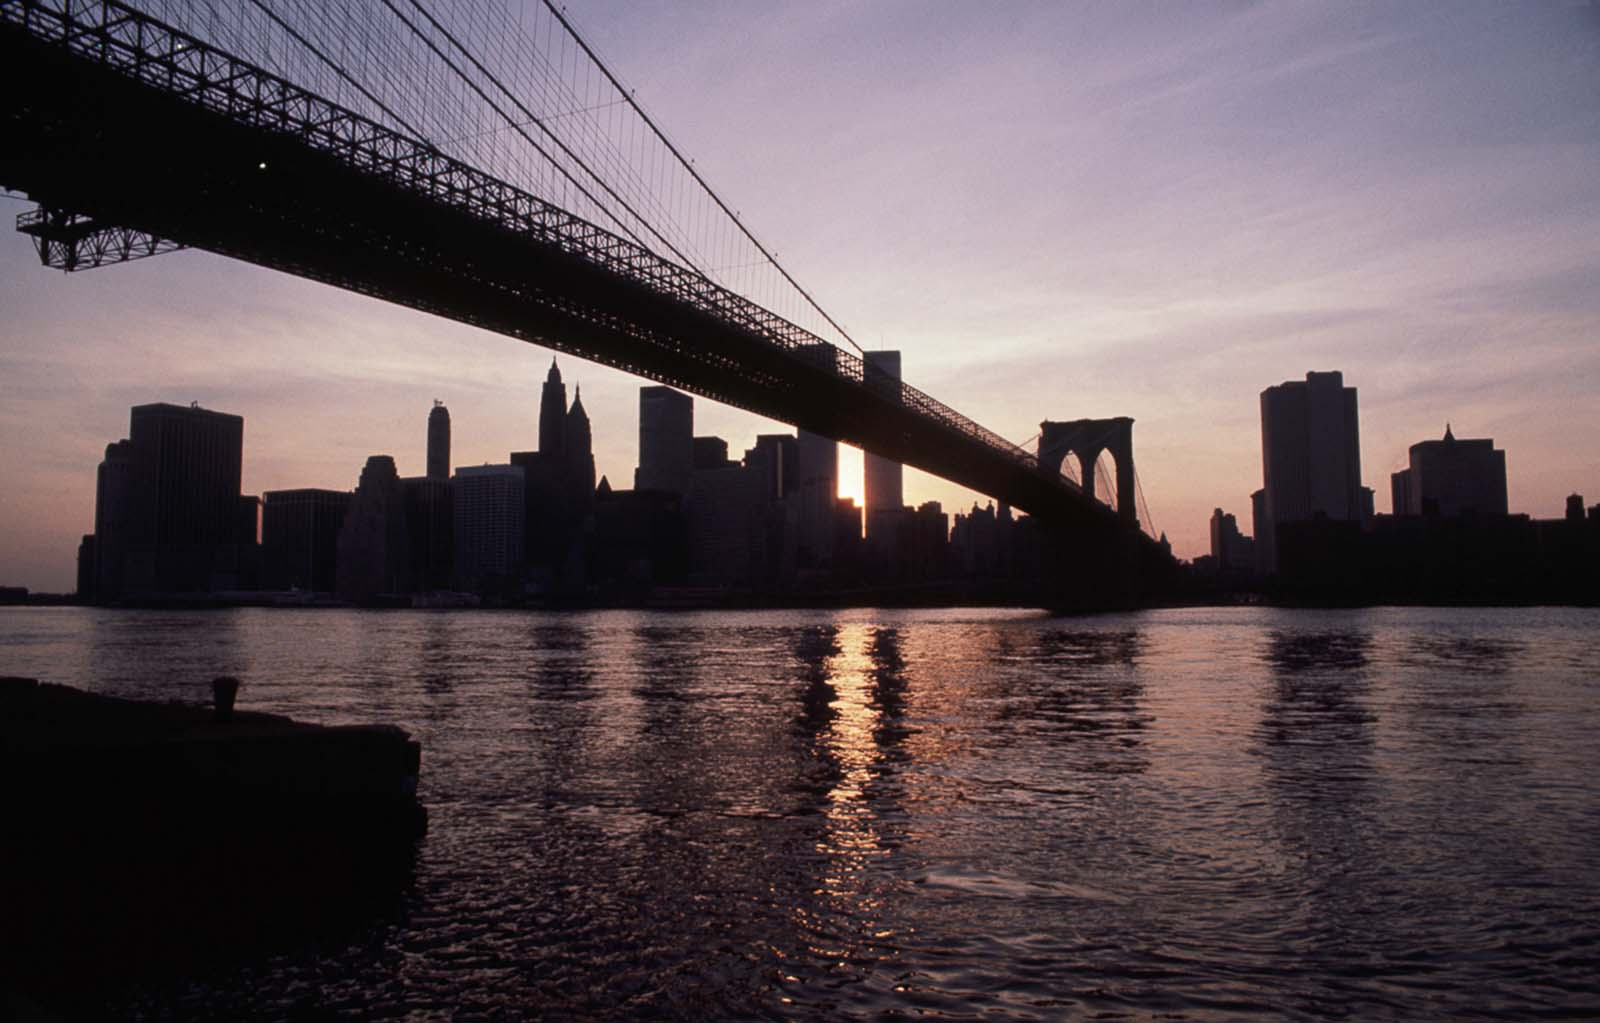 The Brooklyn Bridge and skyline of lower Manhattan remain dark as the sun sets.